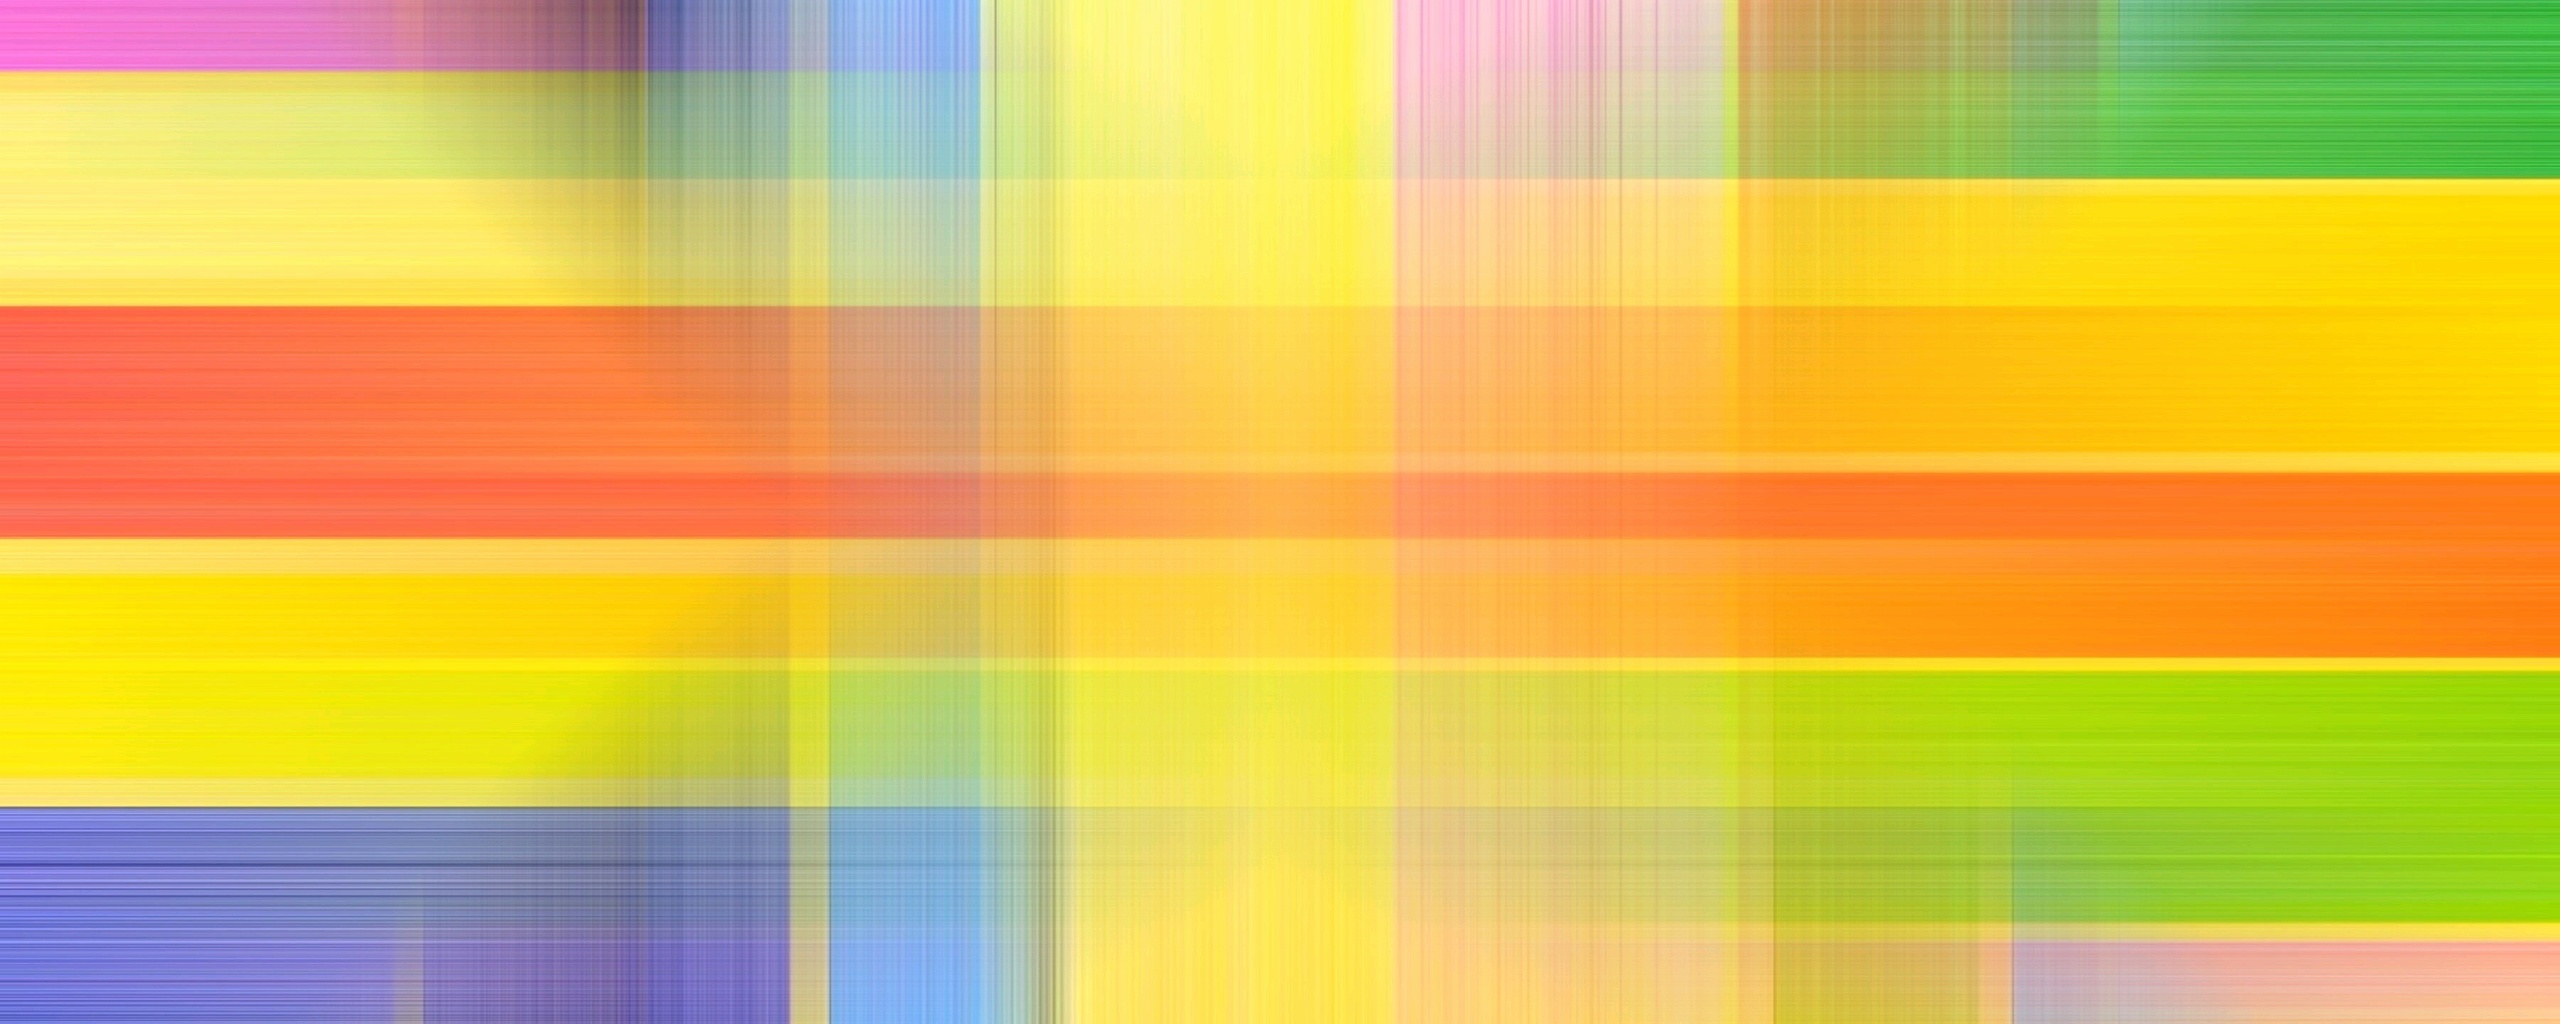 texture-stripped-colored-line-color-59.jpg